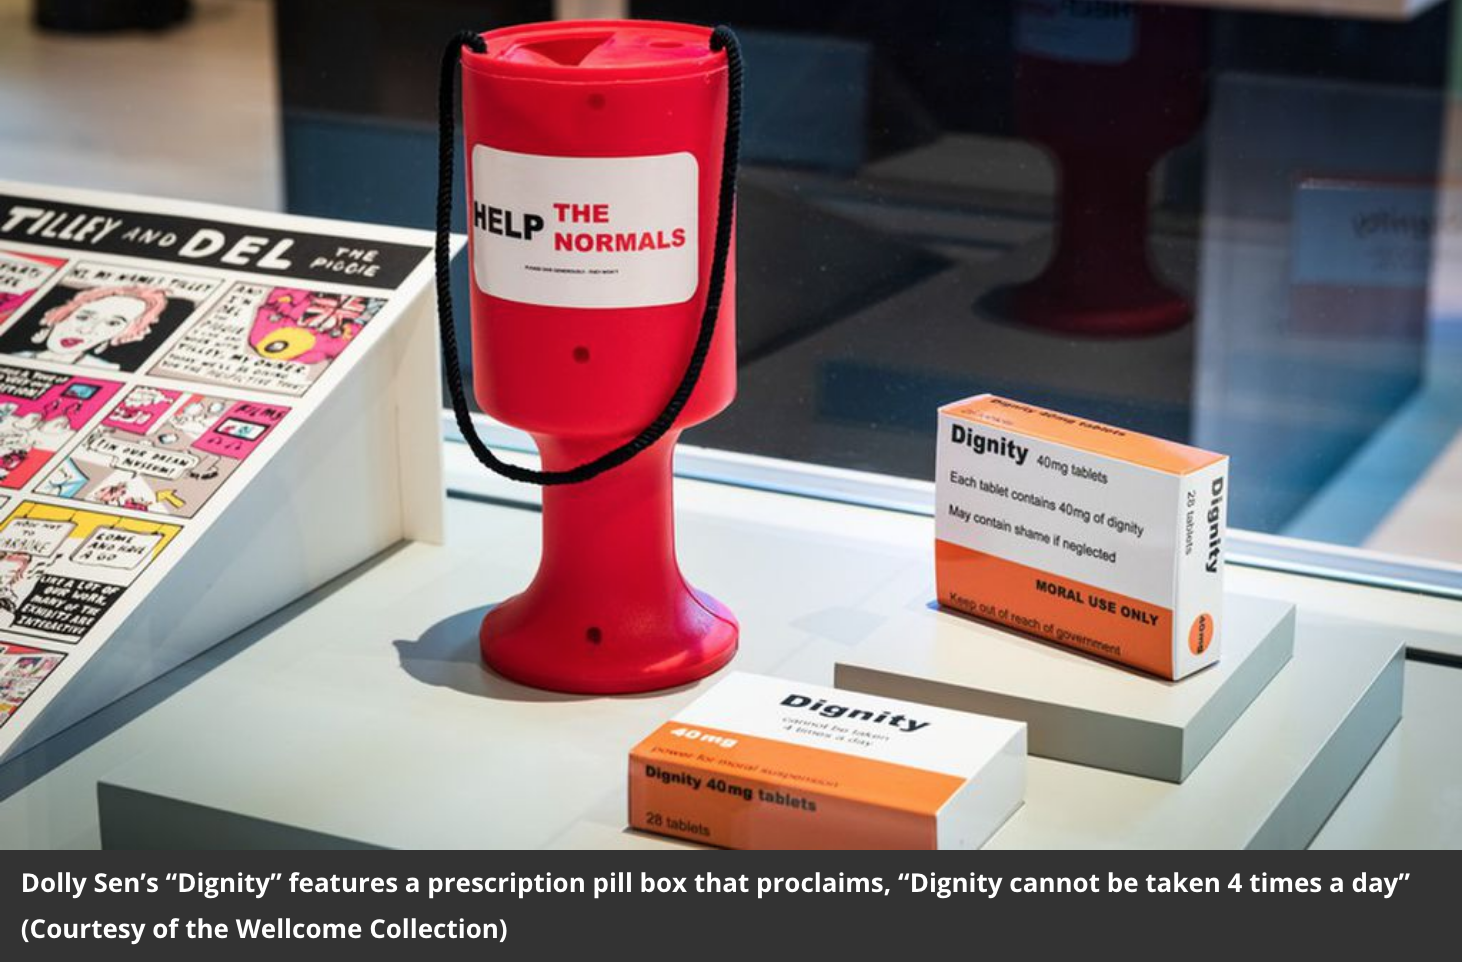 """A picture of a red plastic charity tin saying 'Help the Normals' and 2 boxes of Dignity pills that say """"Dignity cannot be taken 4 times a day"""" The credit in the photo says Dolly' Sen's '""""Dignity"""" is shown (Courtesy of the Wellcome Collection)."""